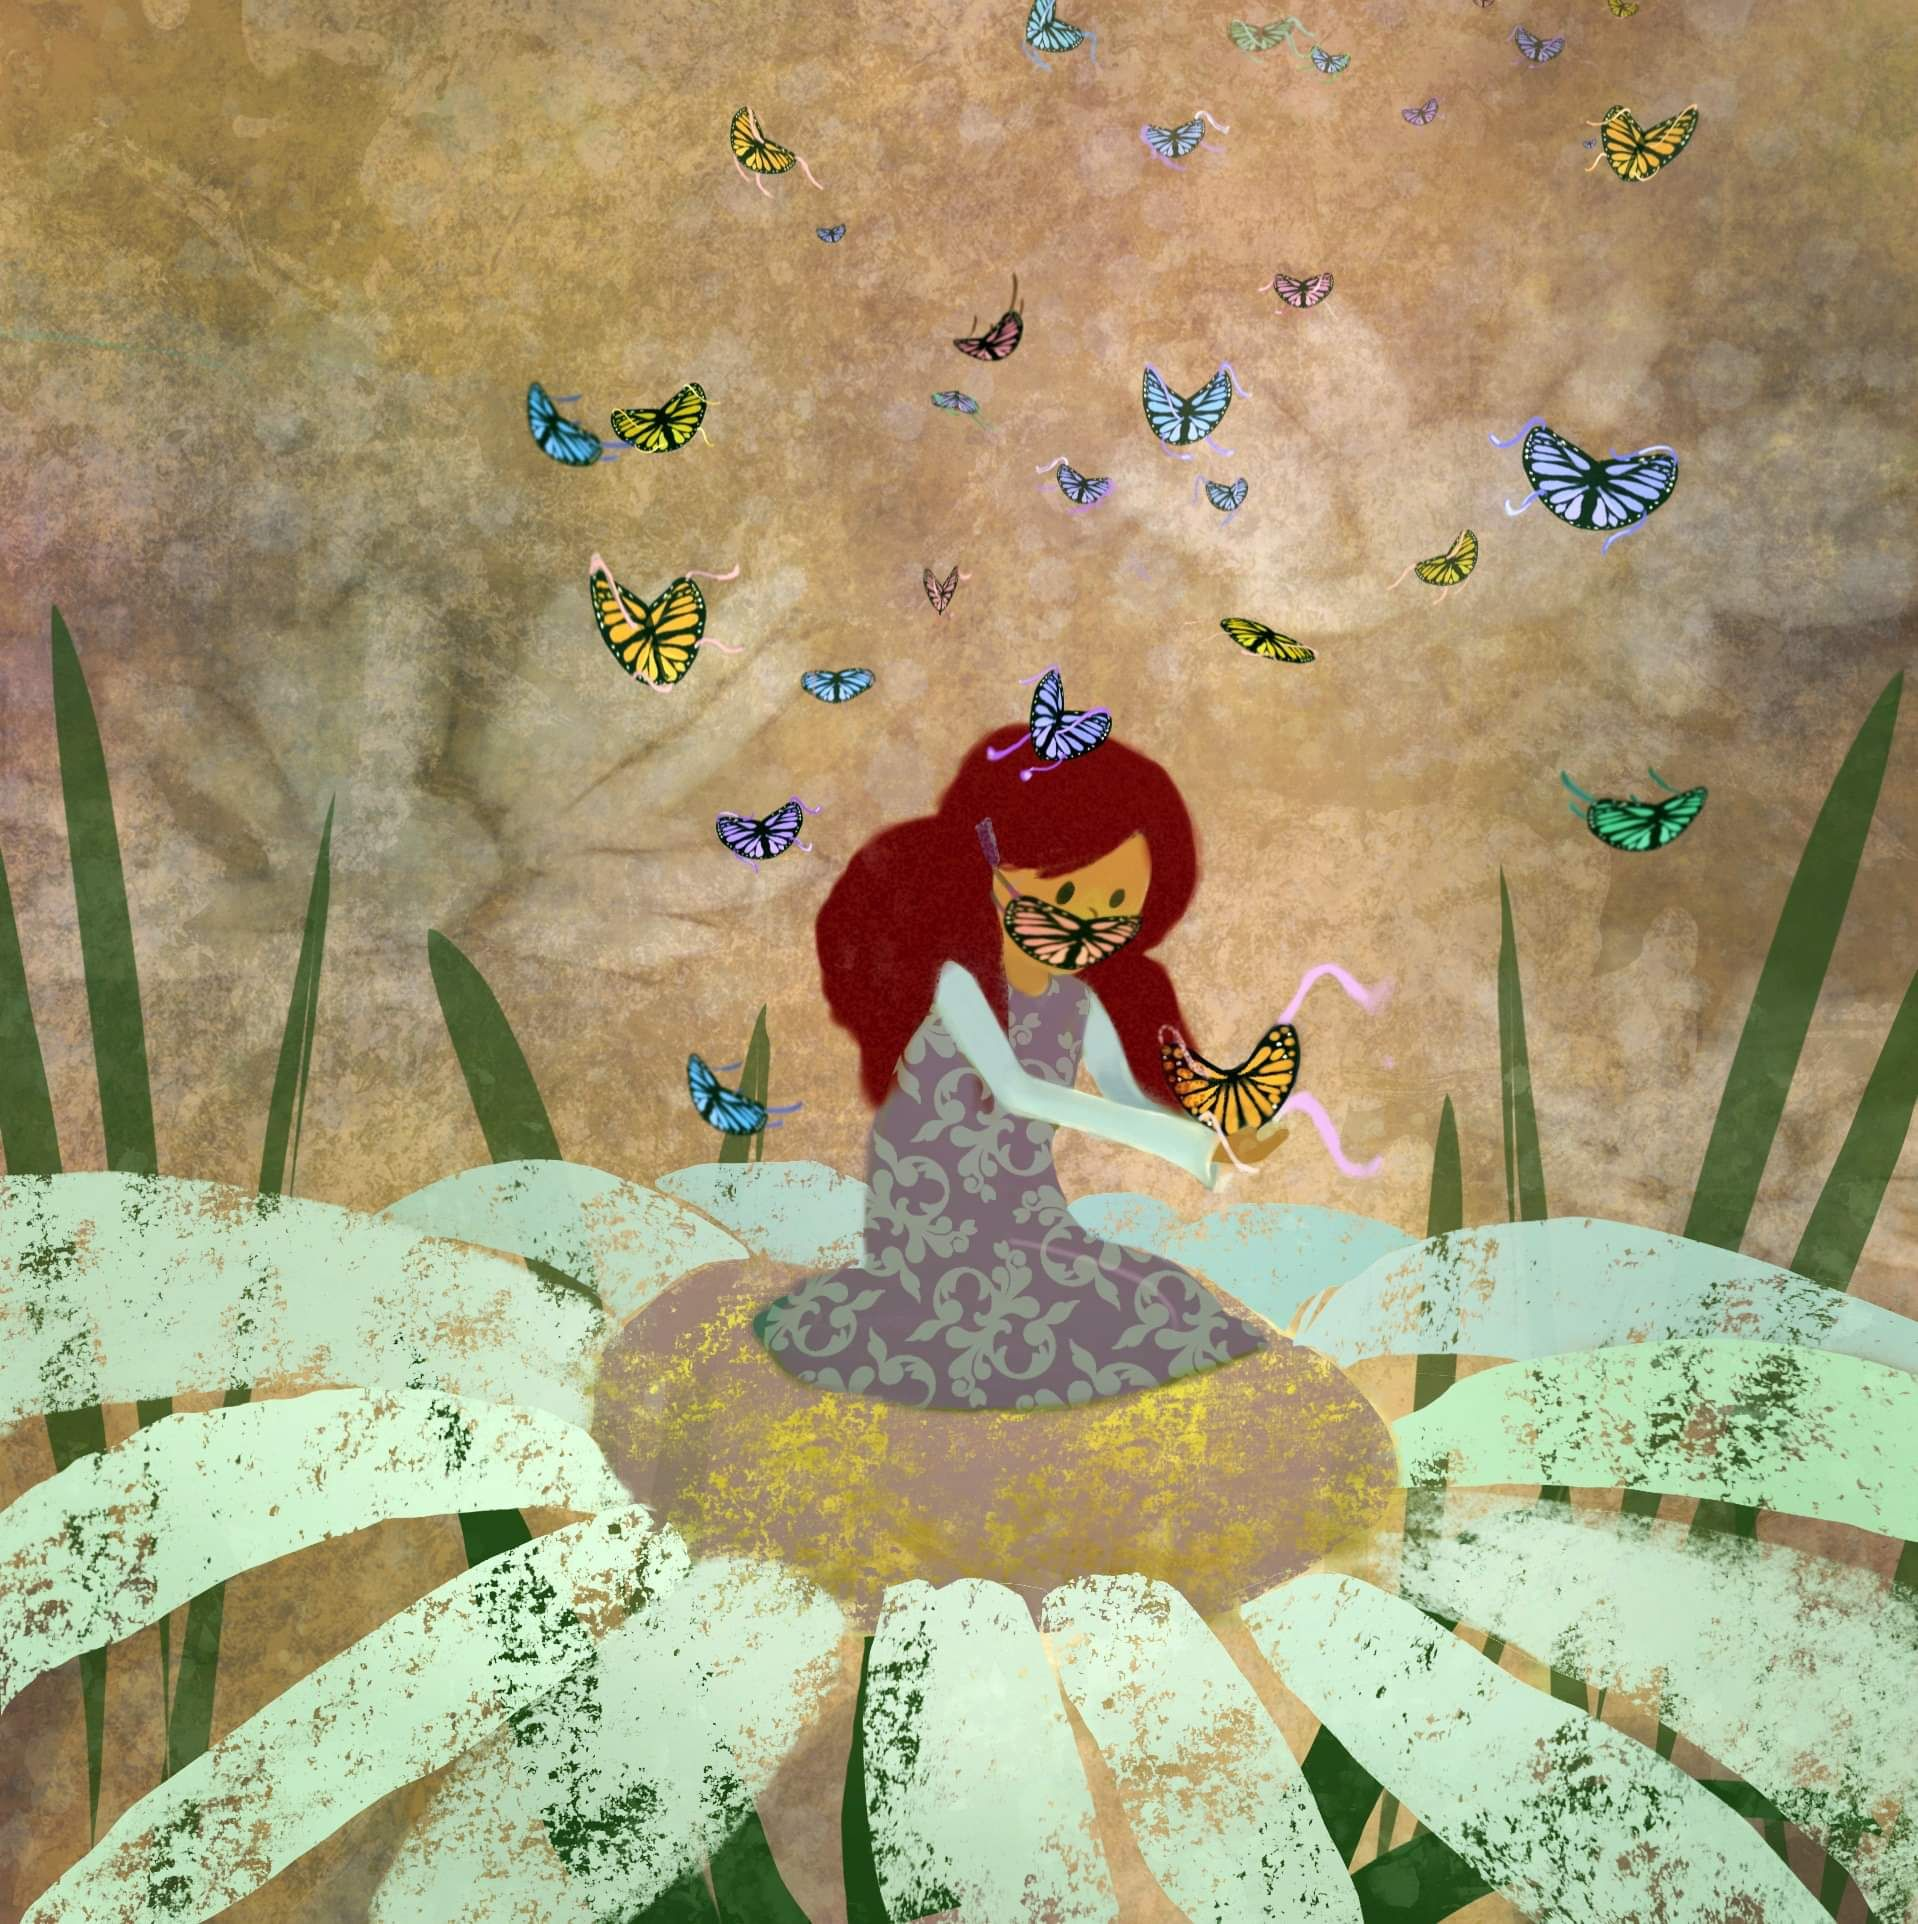 received_284540512586756.jpeg